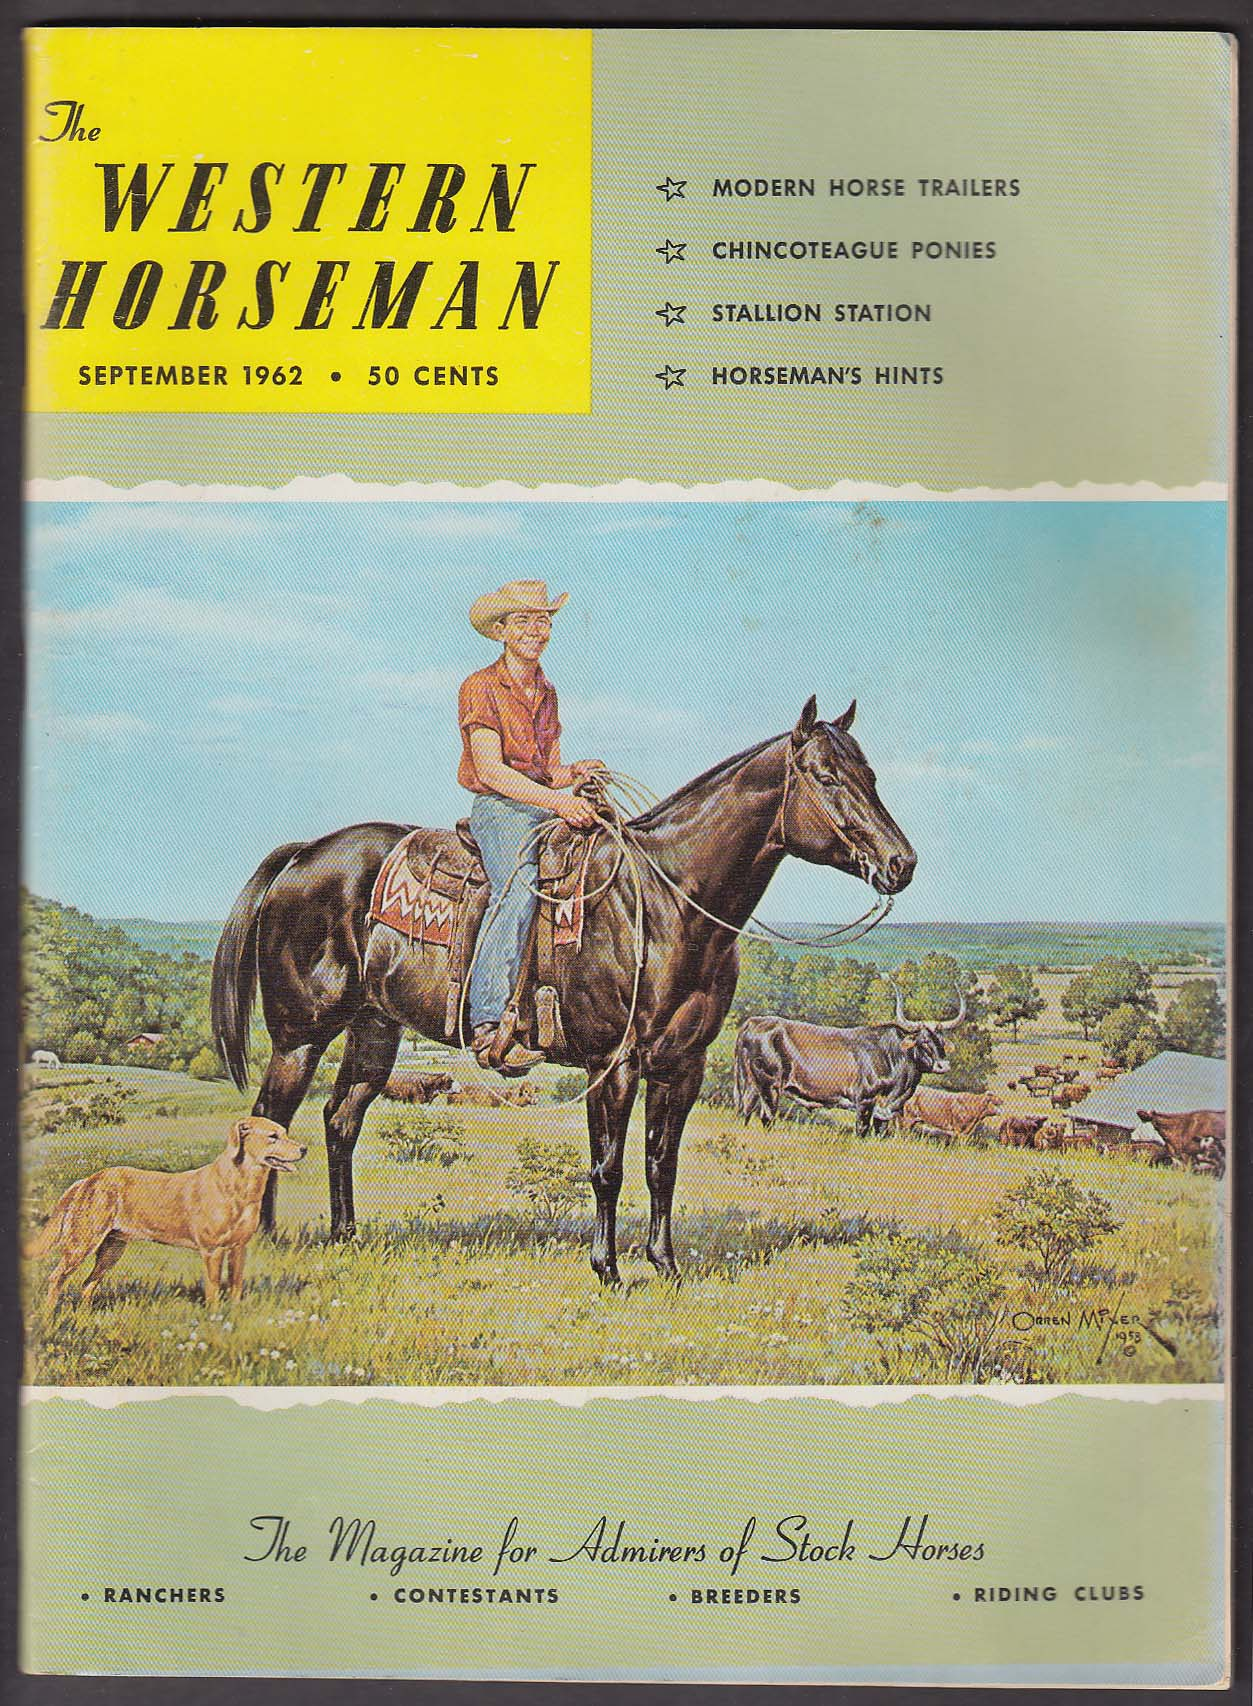 Image for WESTERN HORSEMAN Chincoteague Ponies Intercollegiate Rodeo Mongolia + 9 1962